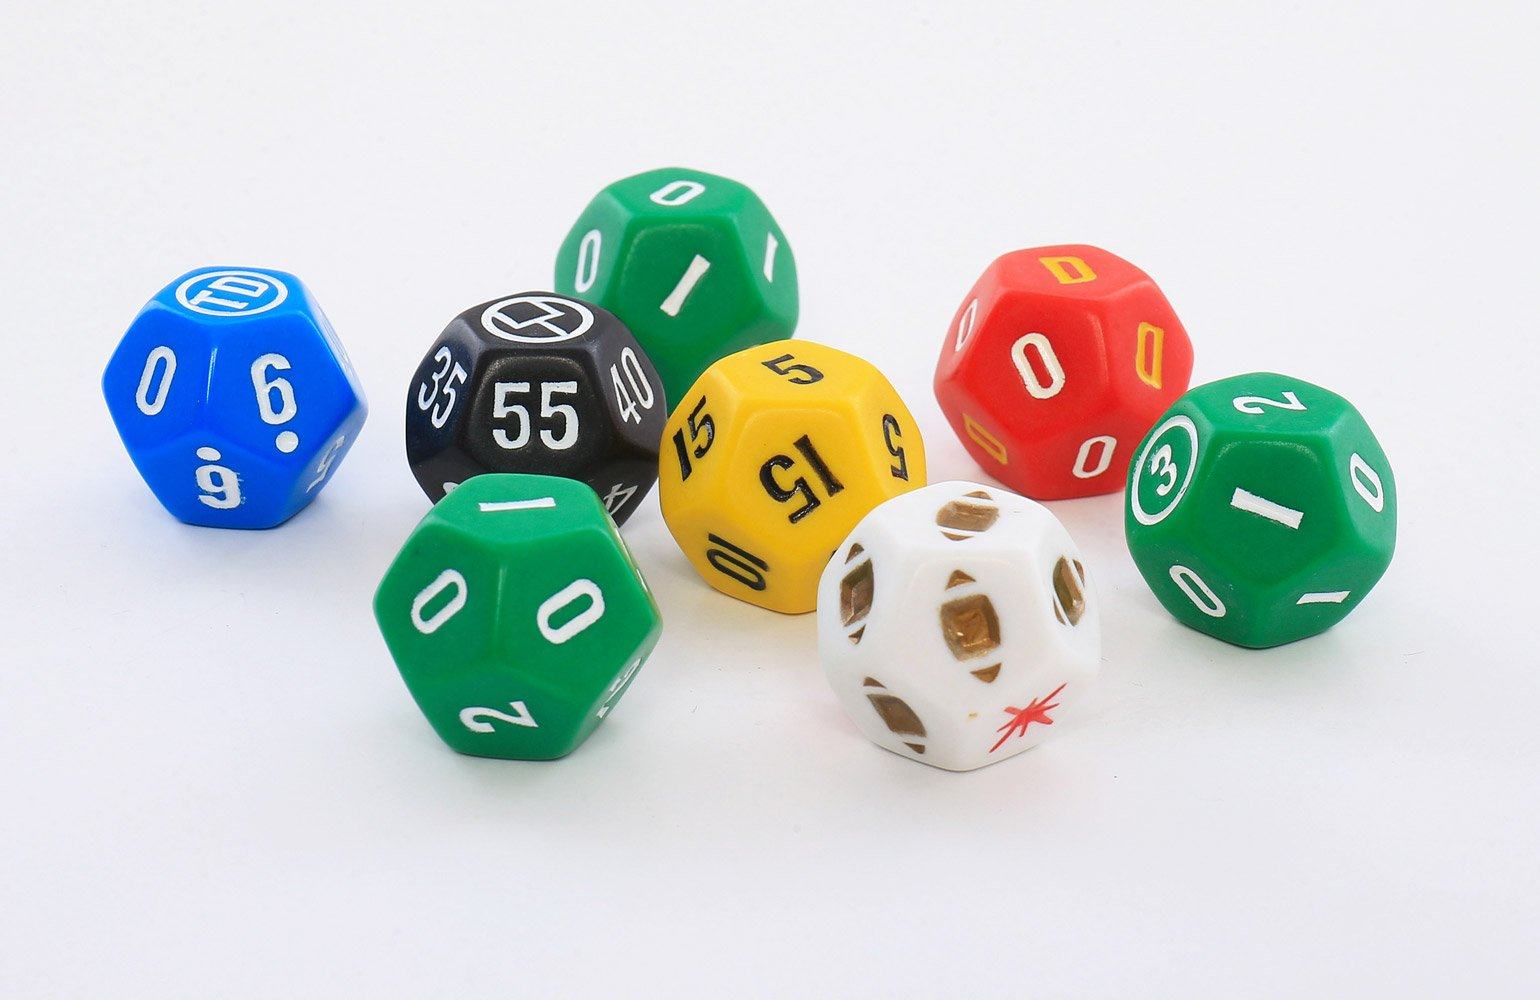 Zobmondo!! Award winning Dice Game, GoLong! A Football Dice Game - Super Fun Game - Portable, Playing Dice : Perfect For - Travel, Home, Parties, Gifts, Stocking Stuffers by Zobmondo!! (Image #5)